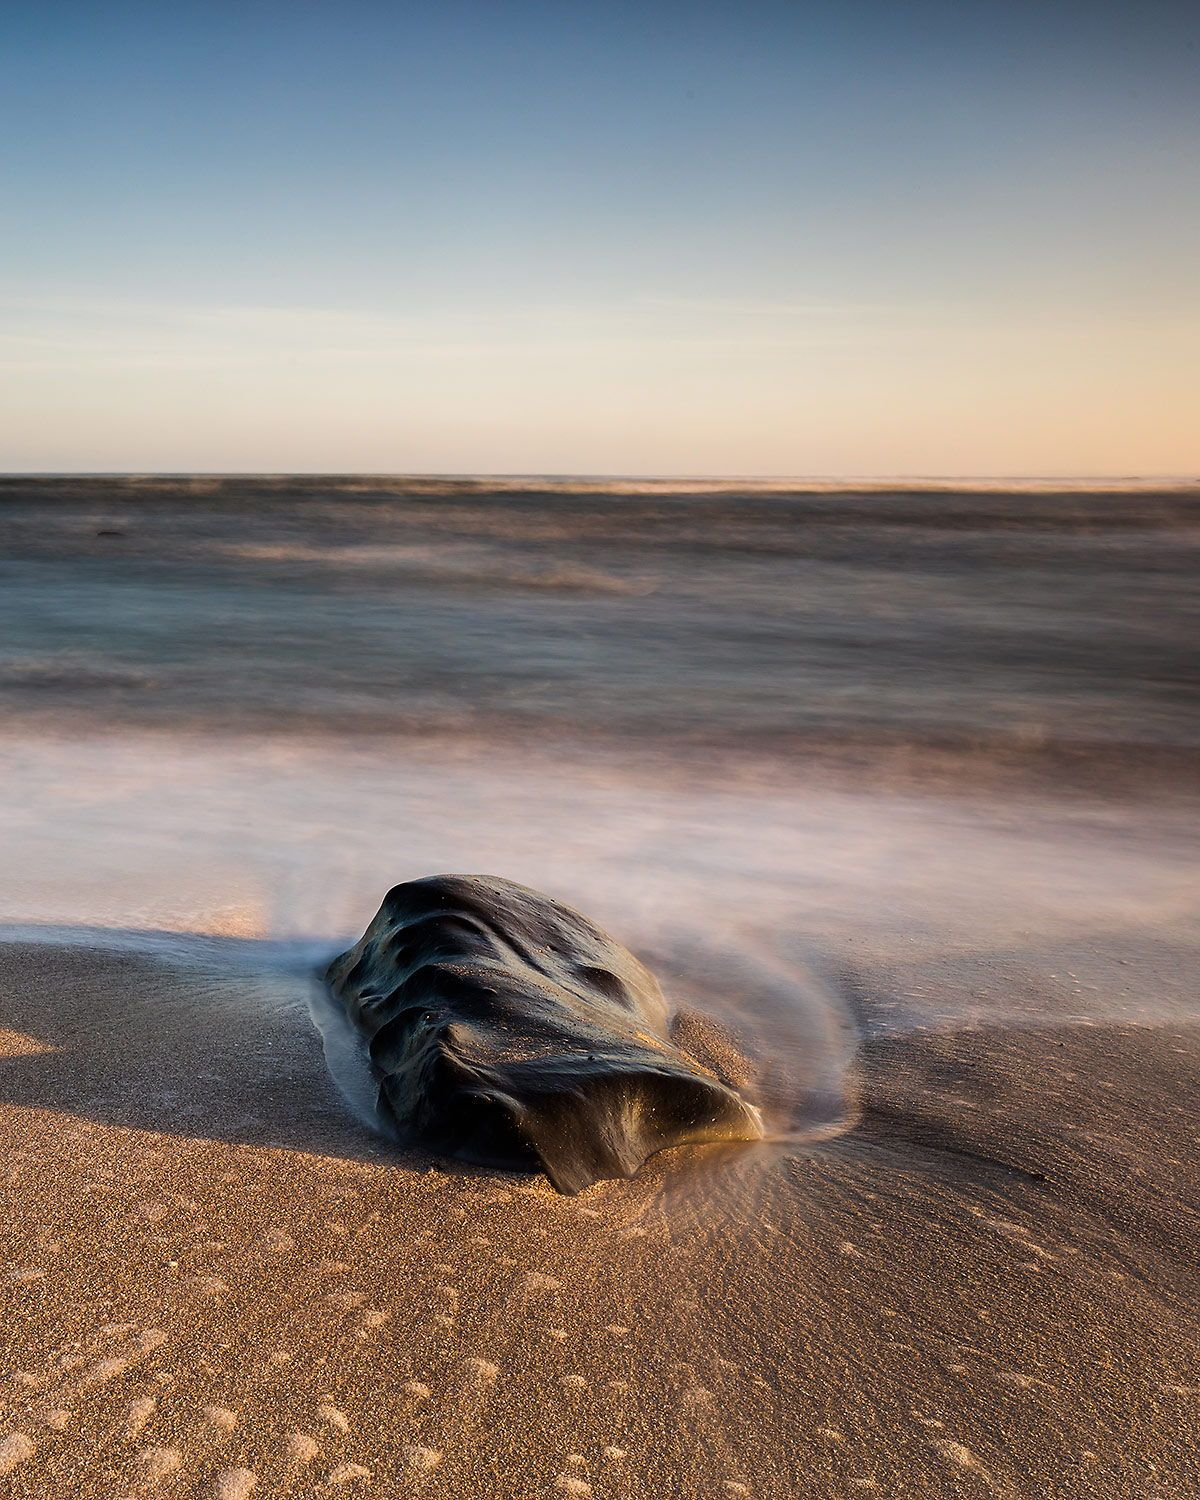 Landscape Photos At The Sea Long Exposure Water Photography And Travel Pictures In 2020 Water Photography Photography Inspiration Nature Beautiful Nature Pictures